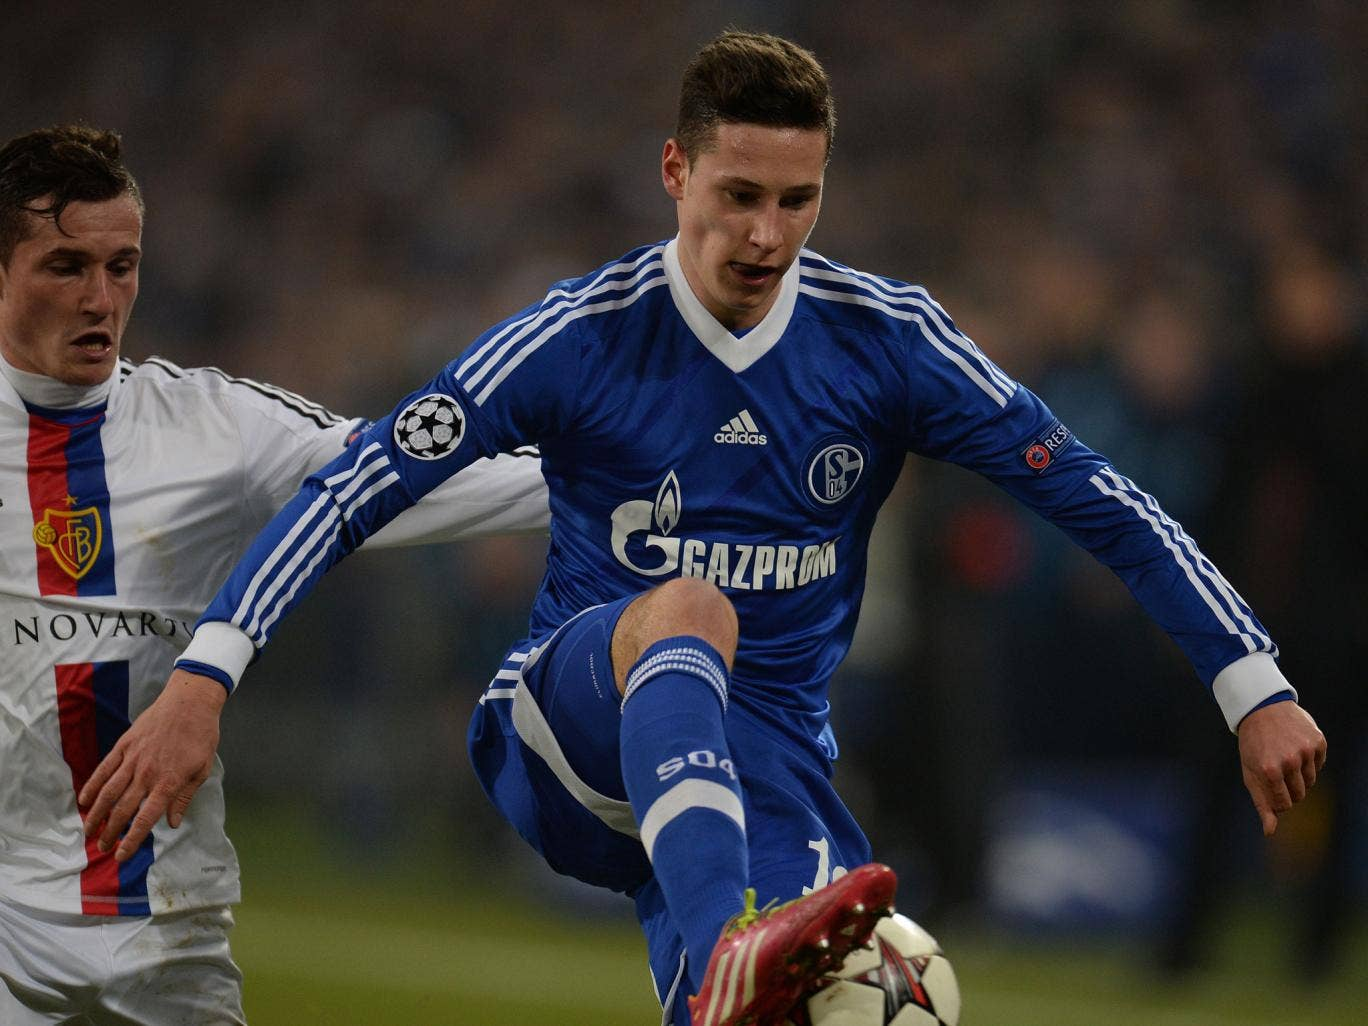 Julian Draxler, in blue, has been valued at £37m, which is too high a risk for a 20-year-old